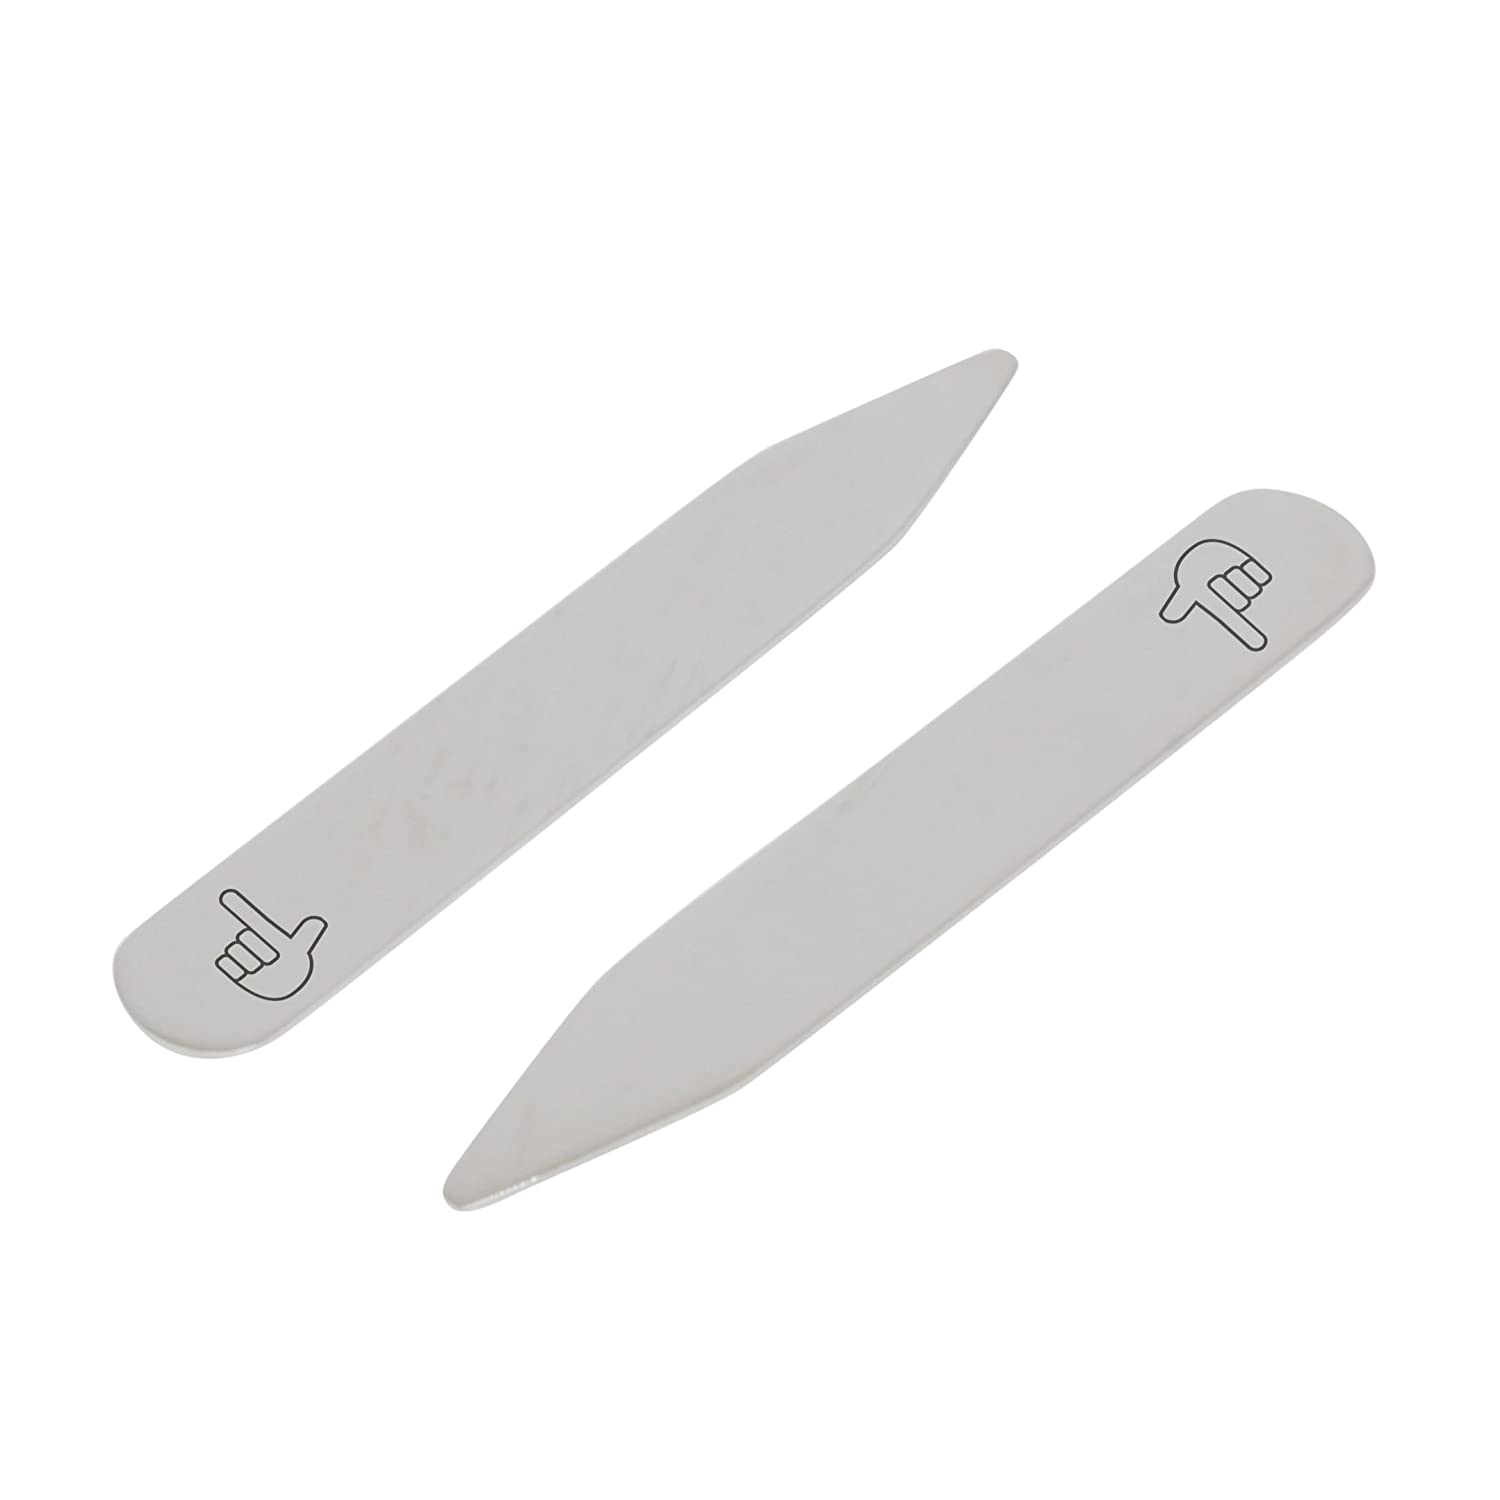 MODERN GOODS SHOP Stainless Steel Collar Stays With Laser Engraved Asll Design 2.5 Inch Metal Collar Stiffeners Made In USA